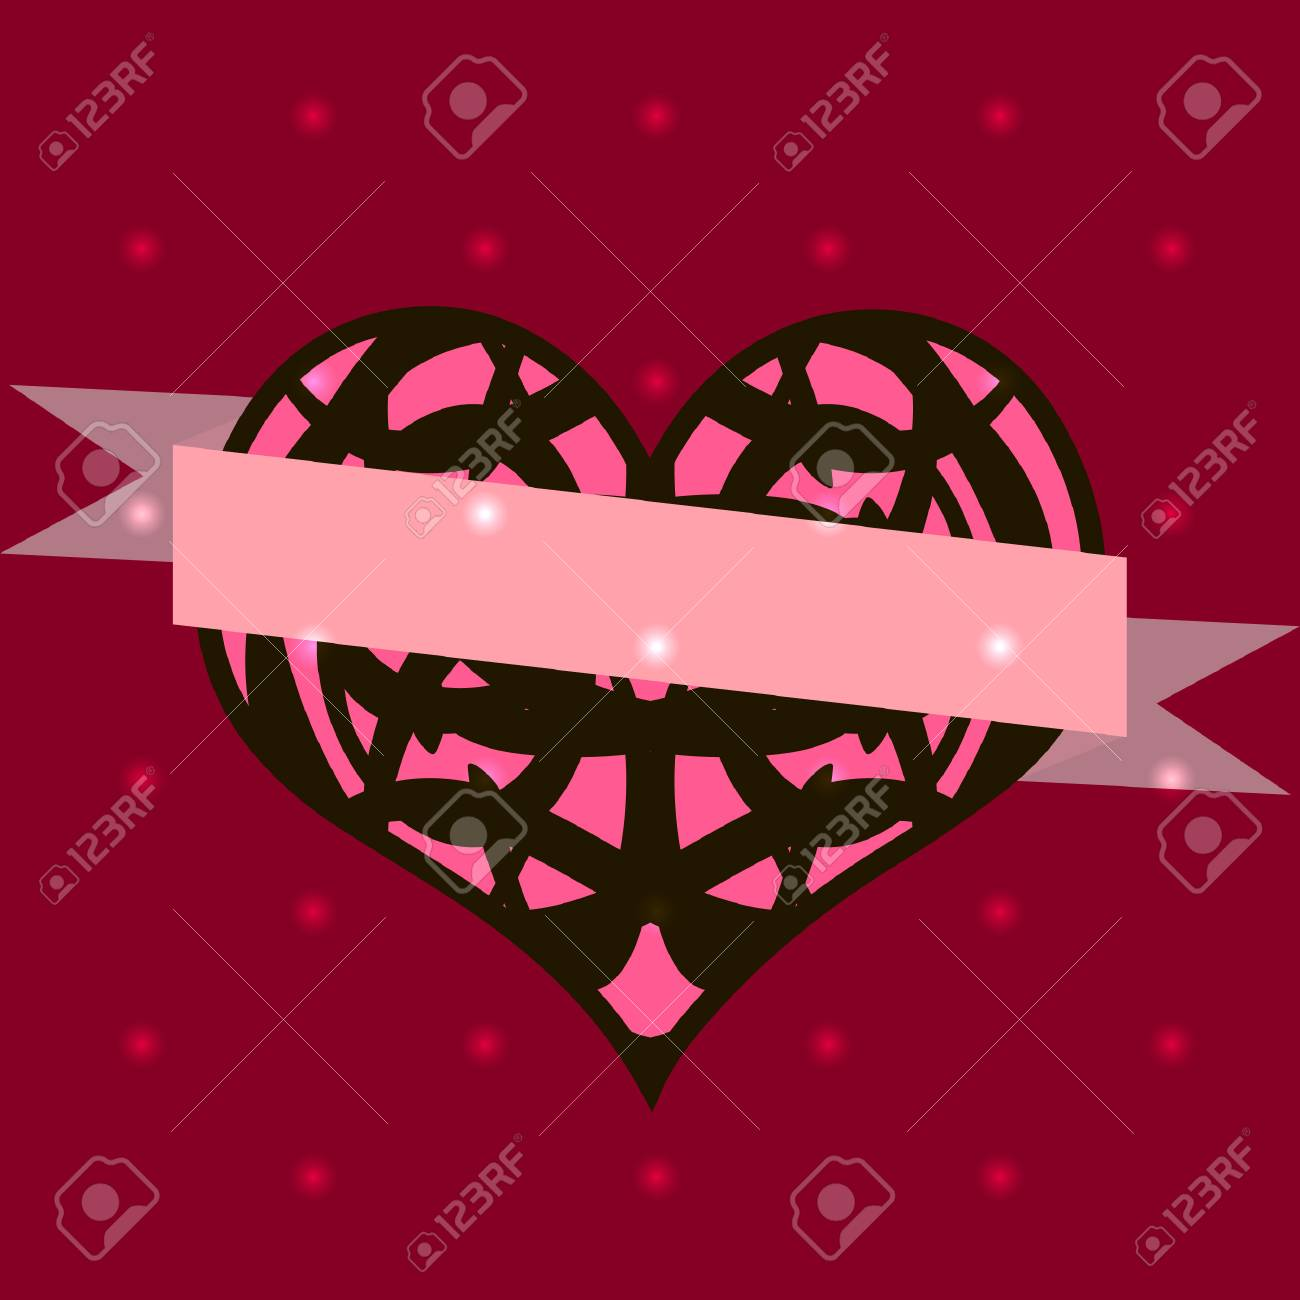 Set Of Templates For Wedding Invitations,valentines Day Cards ...